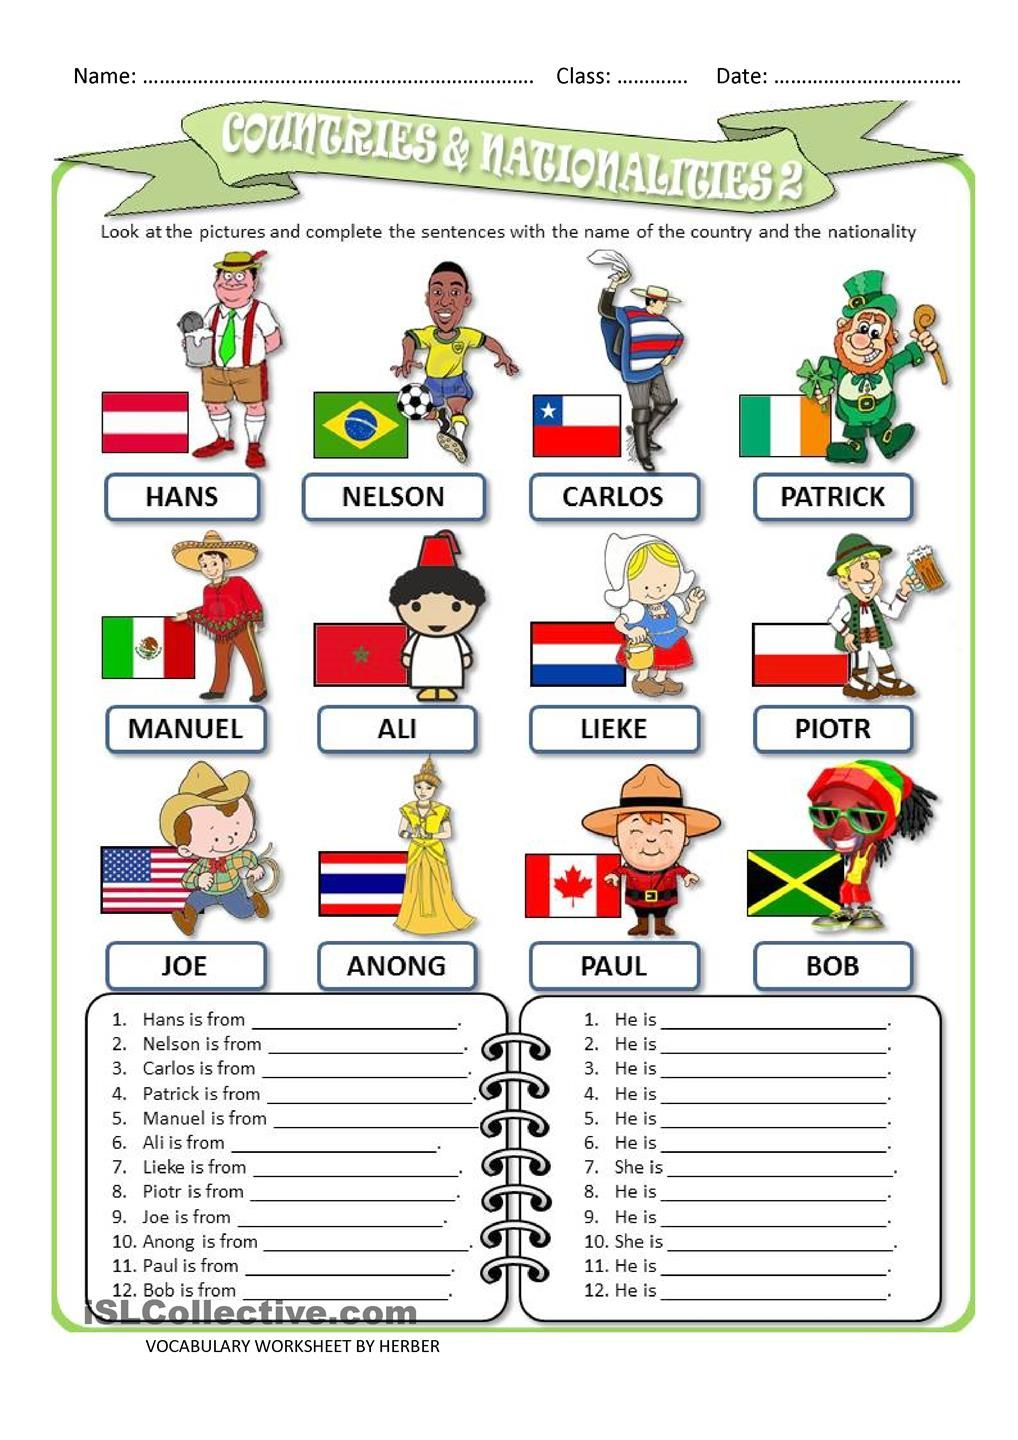 COUNTRIES AND NATIONALITIES 2 WS | Worksheets | Pinterest | Englisch ...